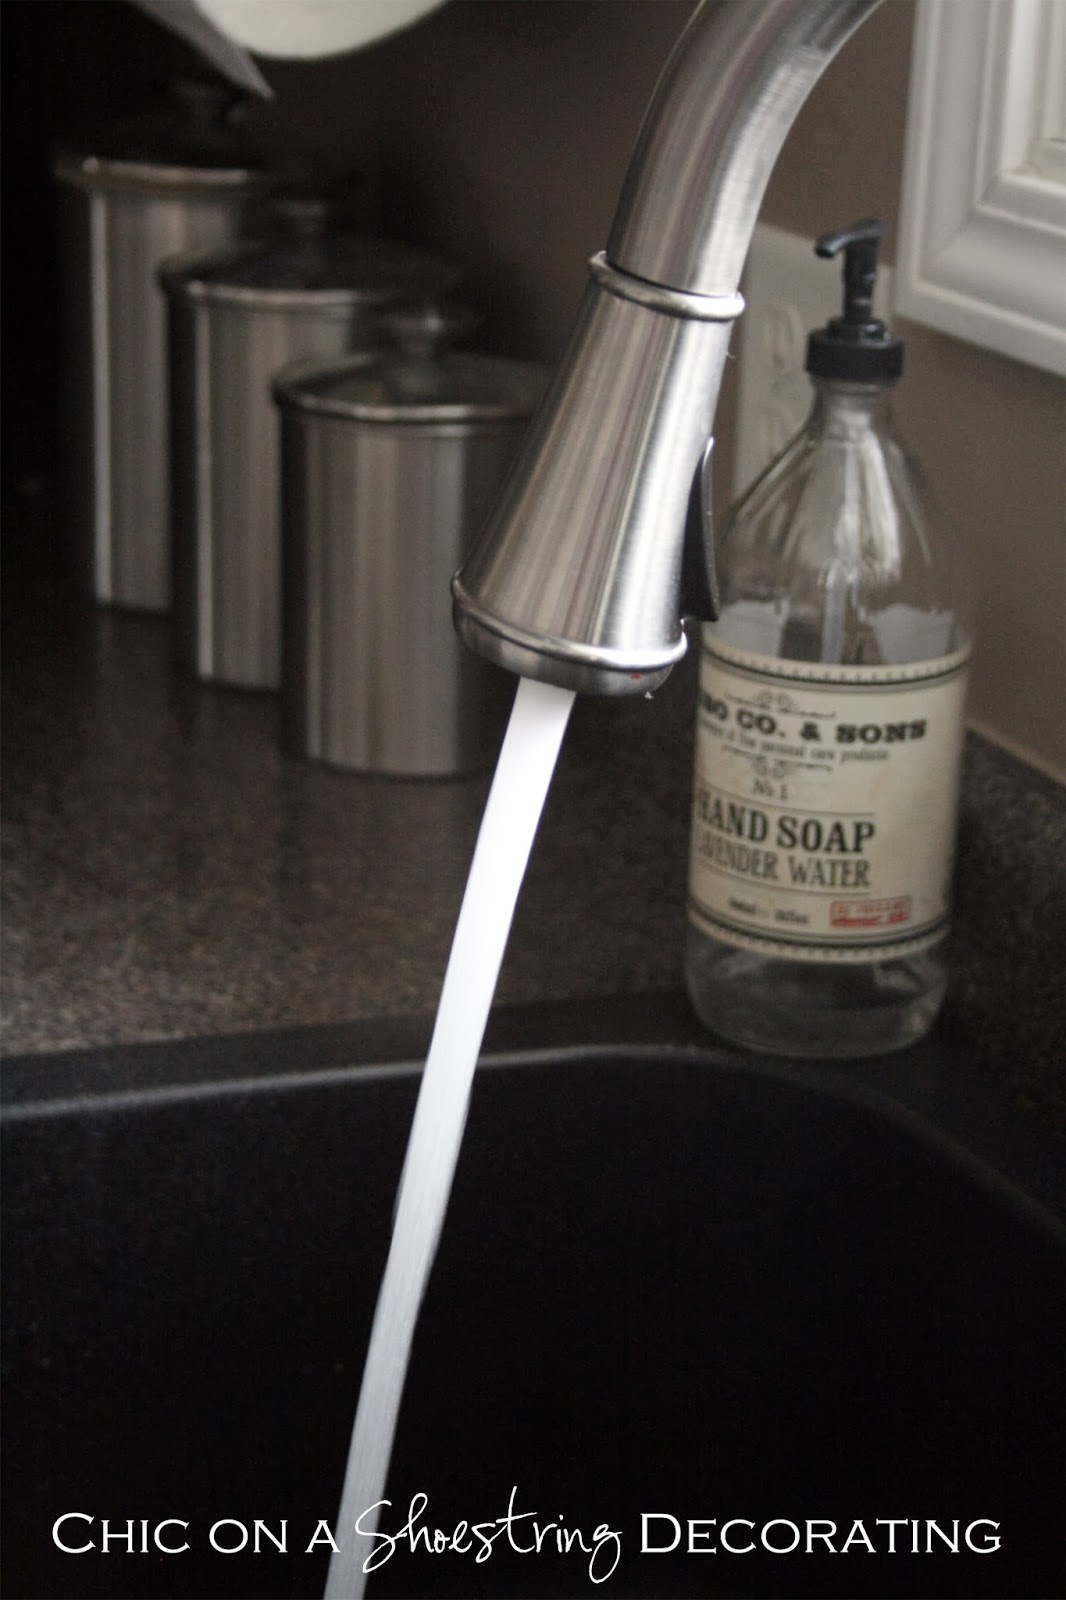 $300 Pfister Faucet Giveaway at Chic on a Shoestring Decorating blog!  Click link to enter: http://chiconashoestringdecorating.blogspot.com/2014/01/300-pfister-faucet-giveaway.html